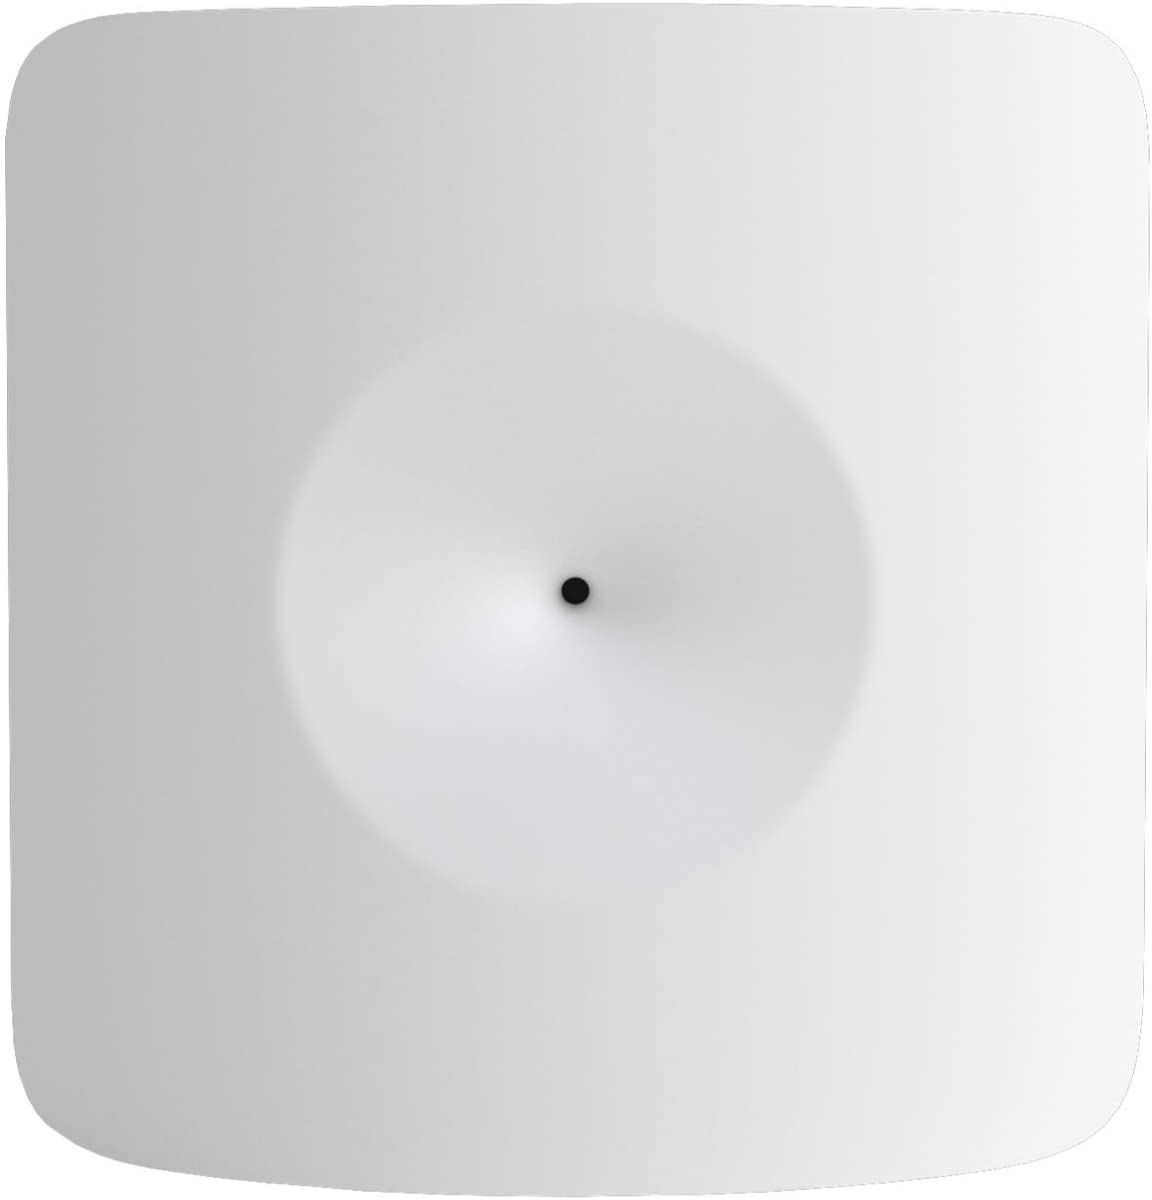 SimpliSafe Glassbreak Sensor - 20ft. Range - Sound Detection Technology - Compatible with The SimpliSafe Home Security System (New Gen)